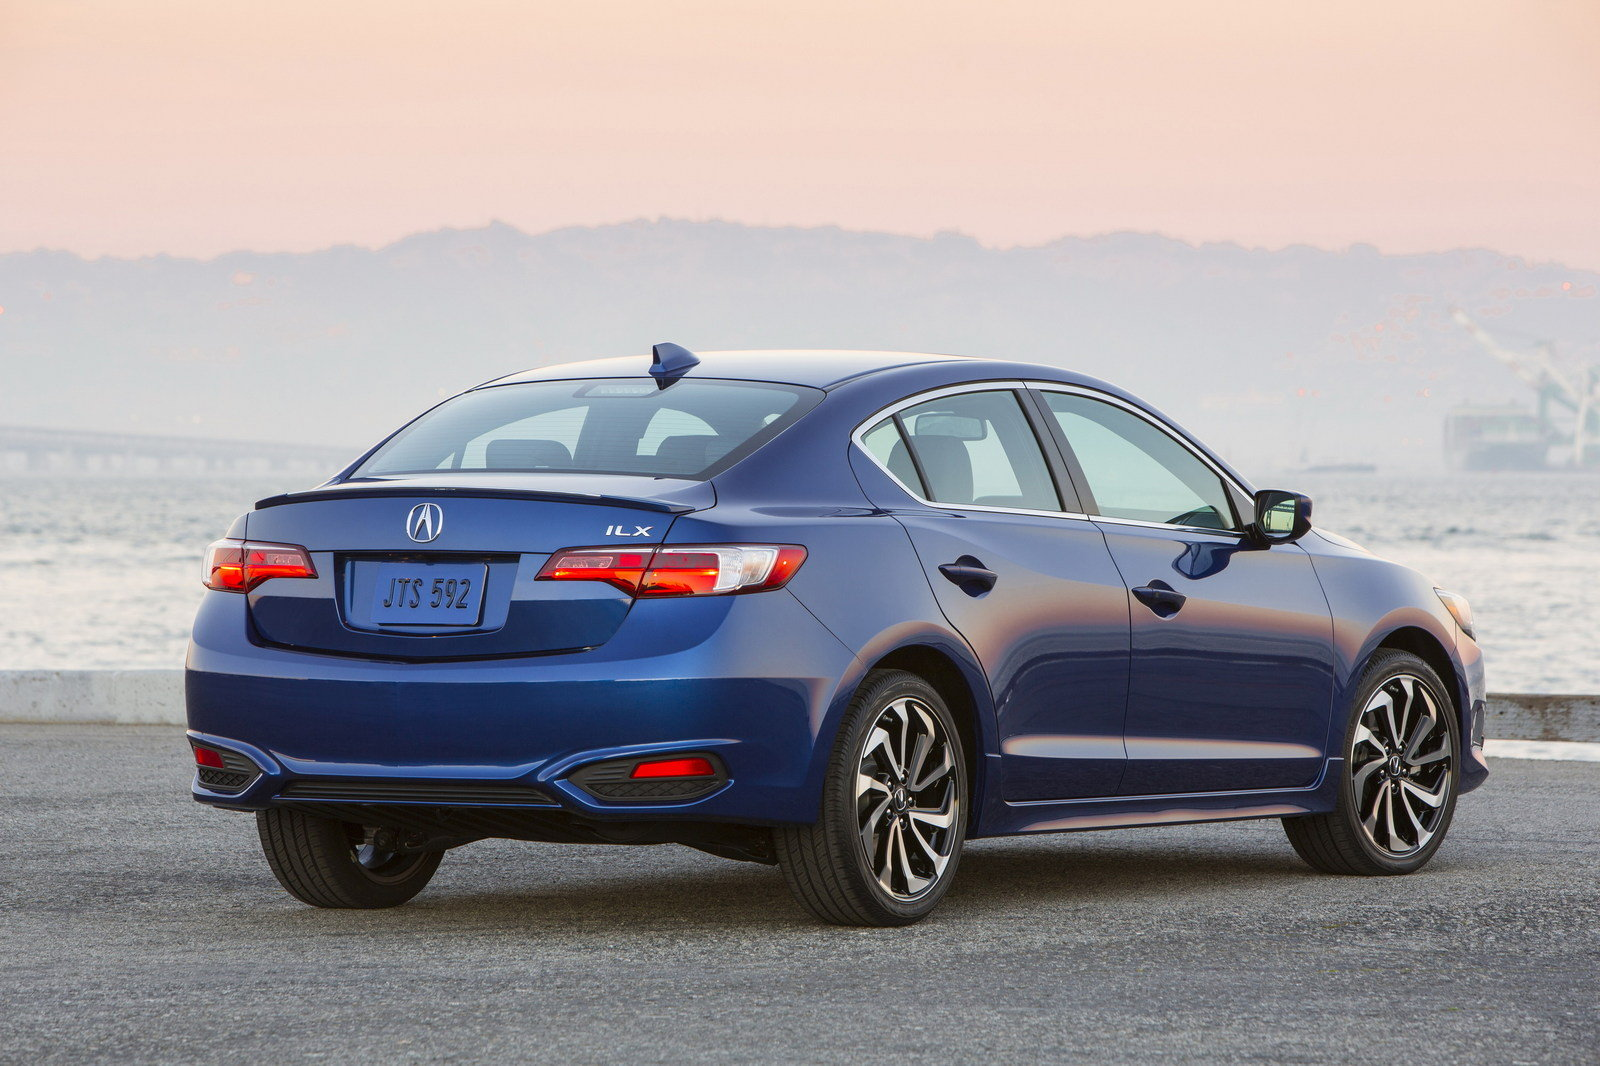 2016 2017 acura ilx picture 672378 car review top speed. Black Bedroom Furniture Sets. Home Design Ideas